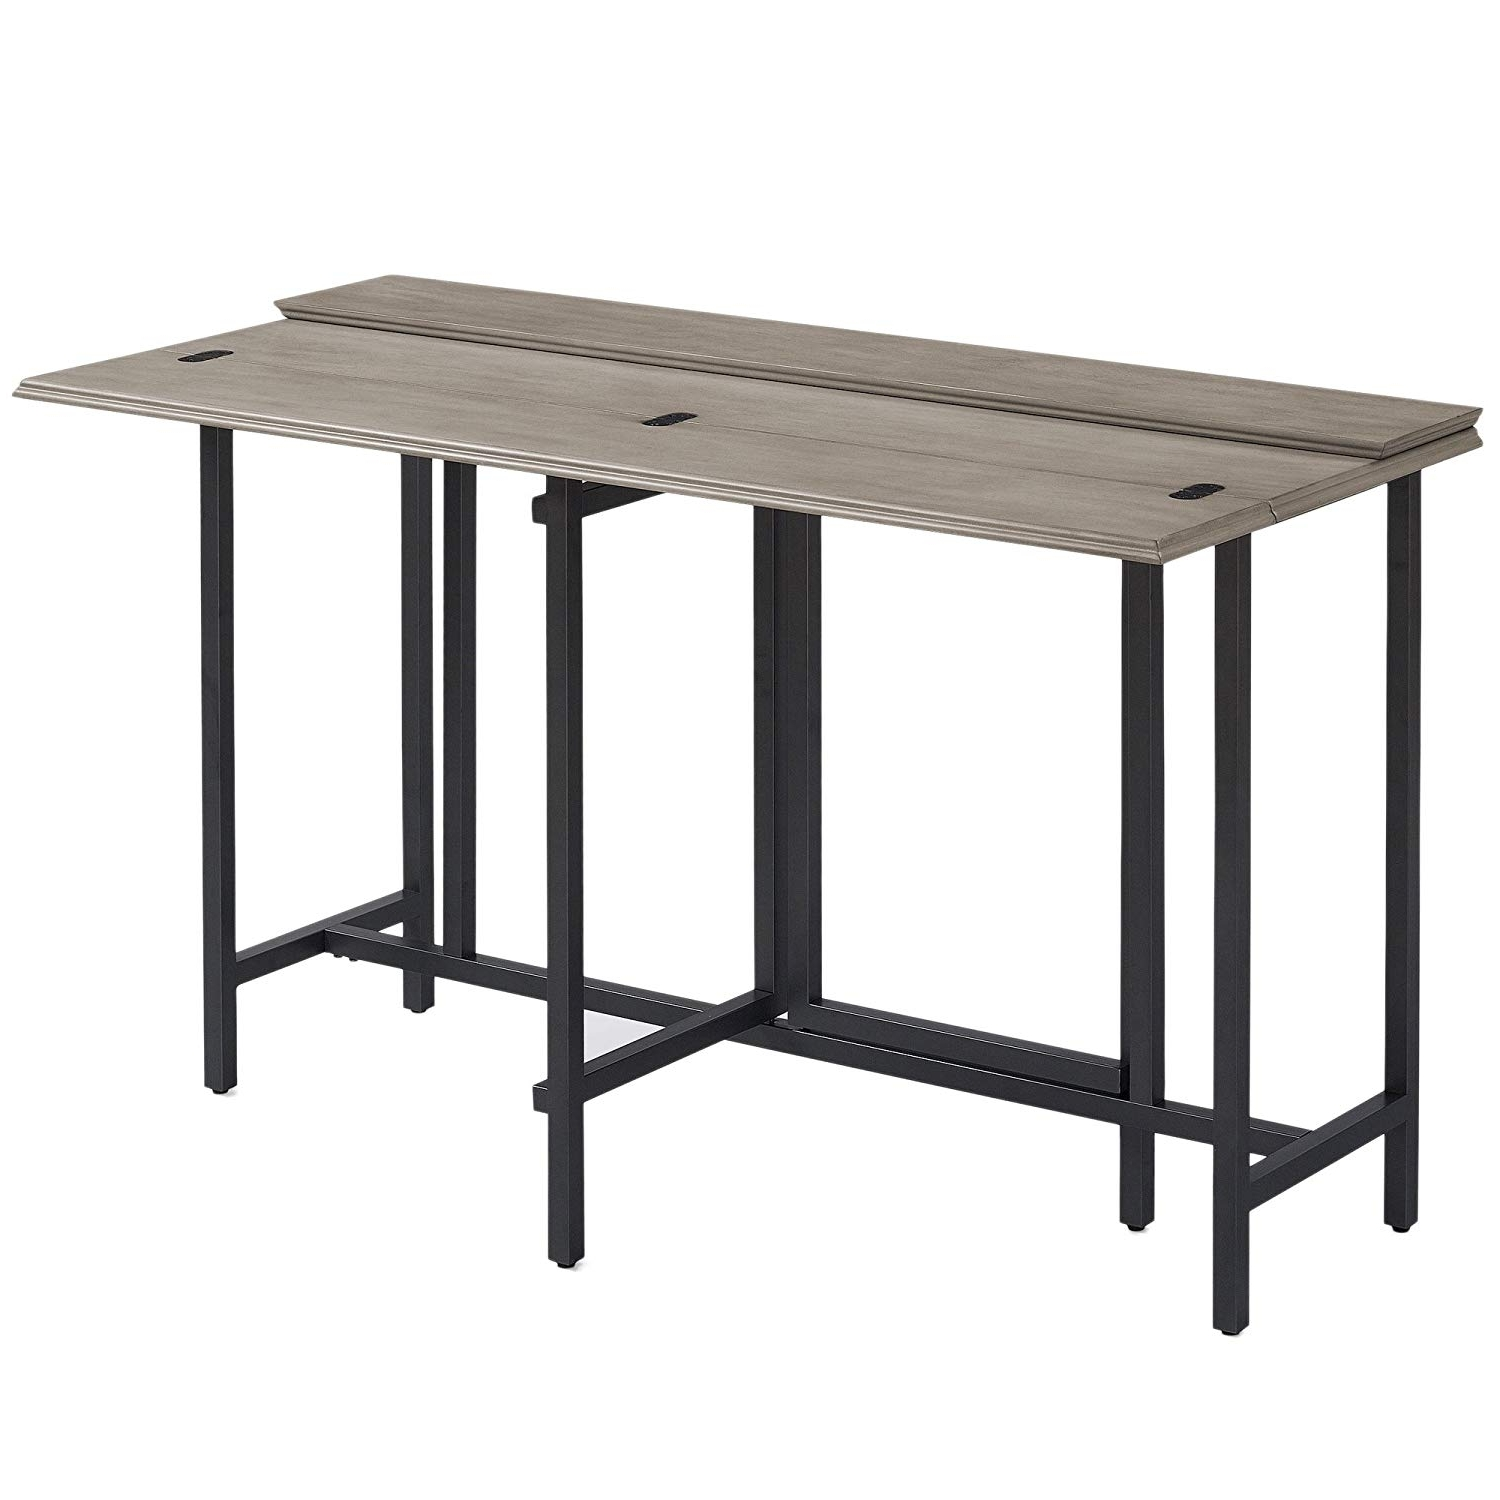 Convertible Dining Table Wood Contemporary Expandable Home Console Kitchen  Table Regarding Fashionable Wood Dining Tables (View 15 of 25)